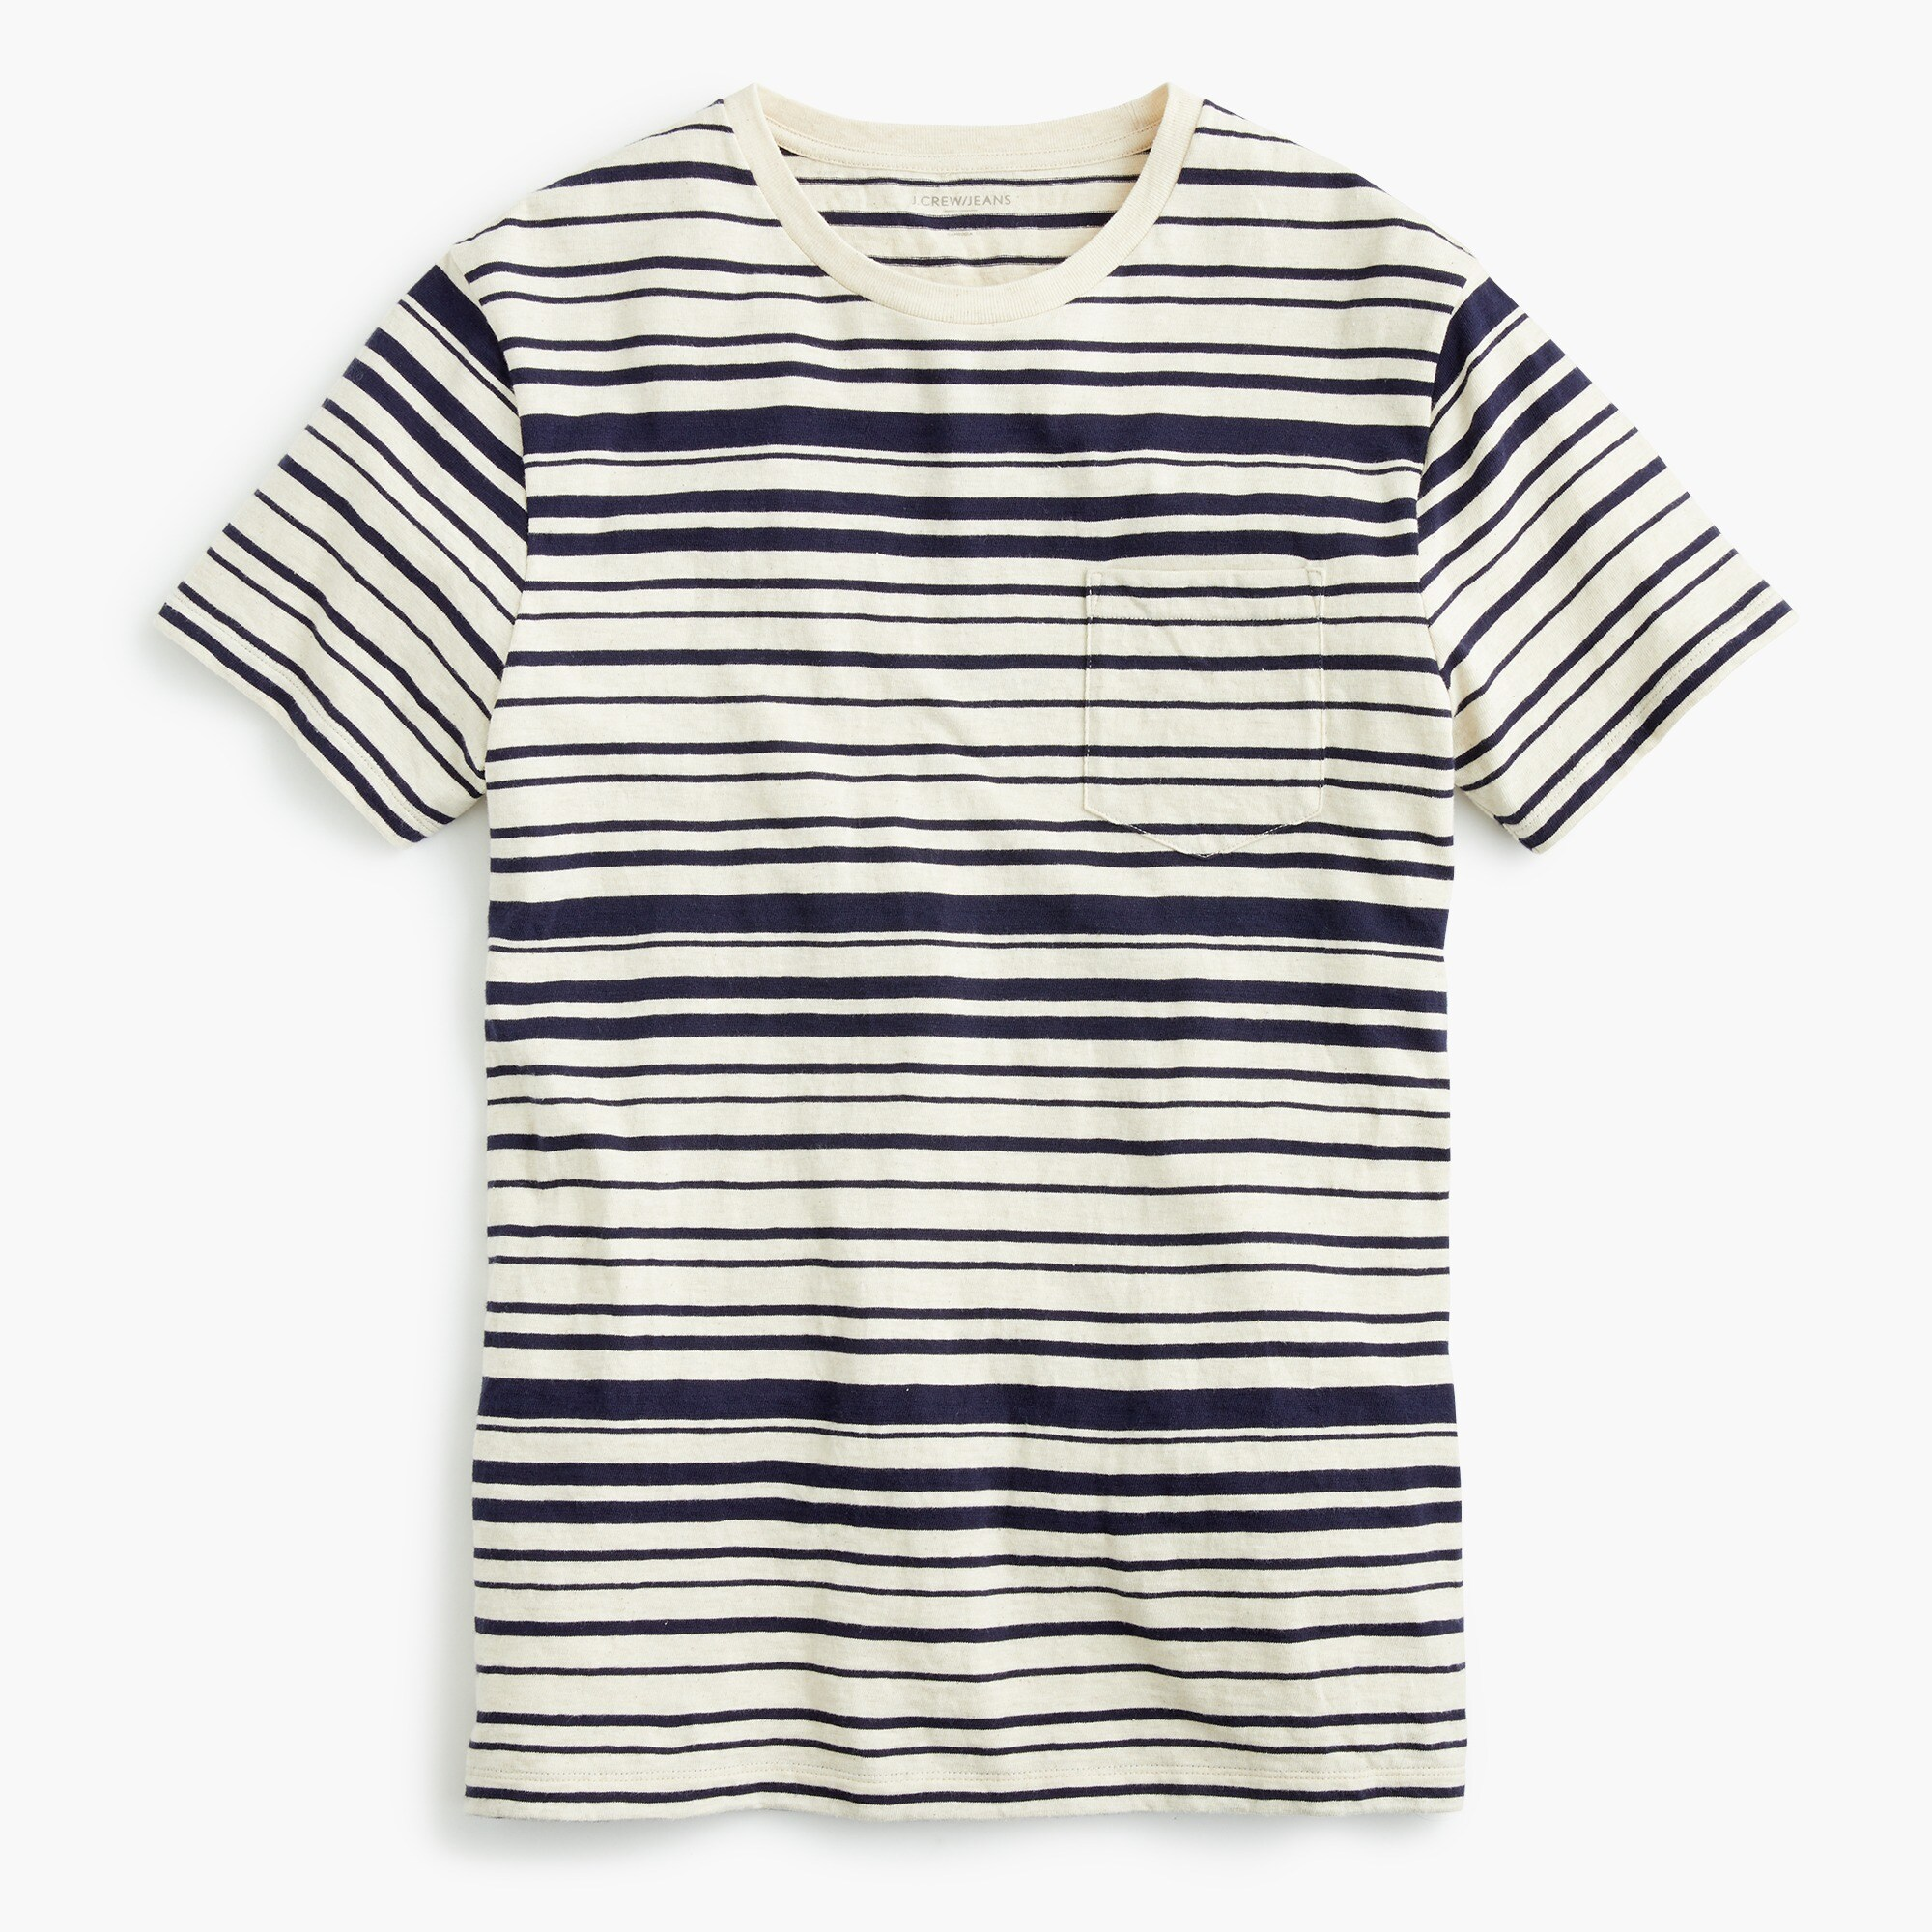 Tall J.Crew Jeans slub cotton T-shirt in variegated stripe